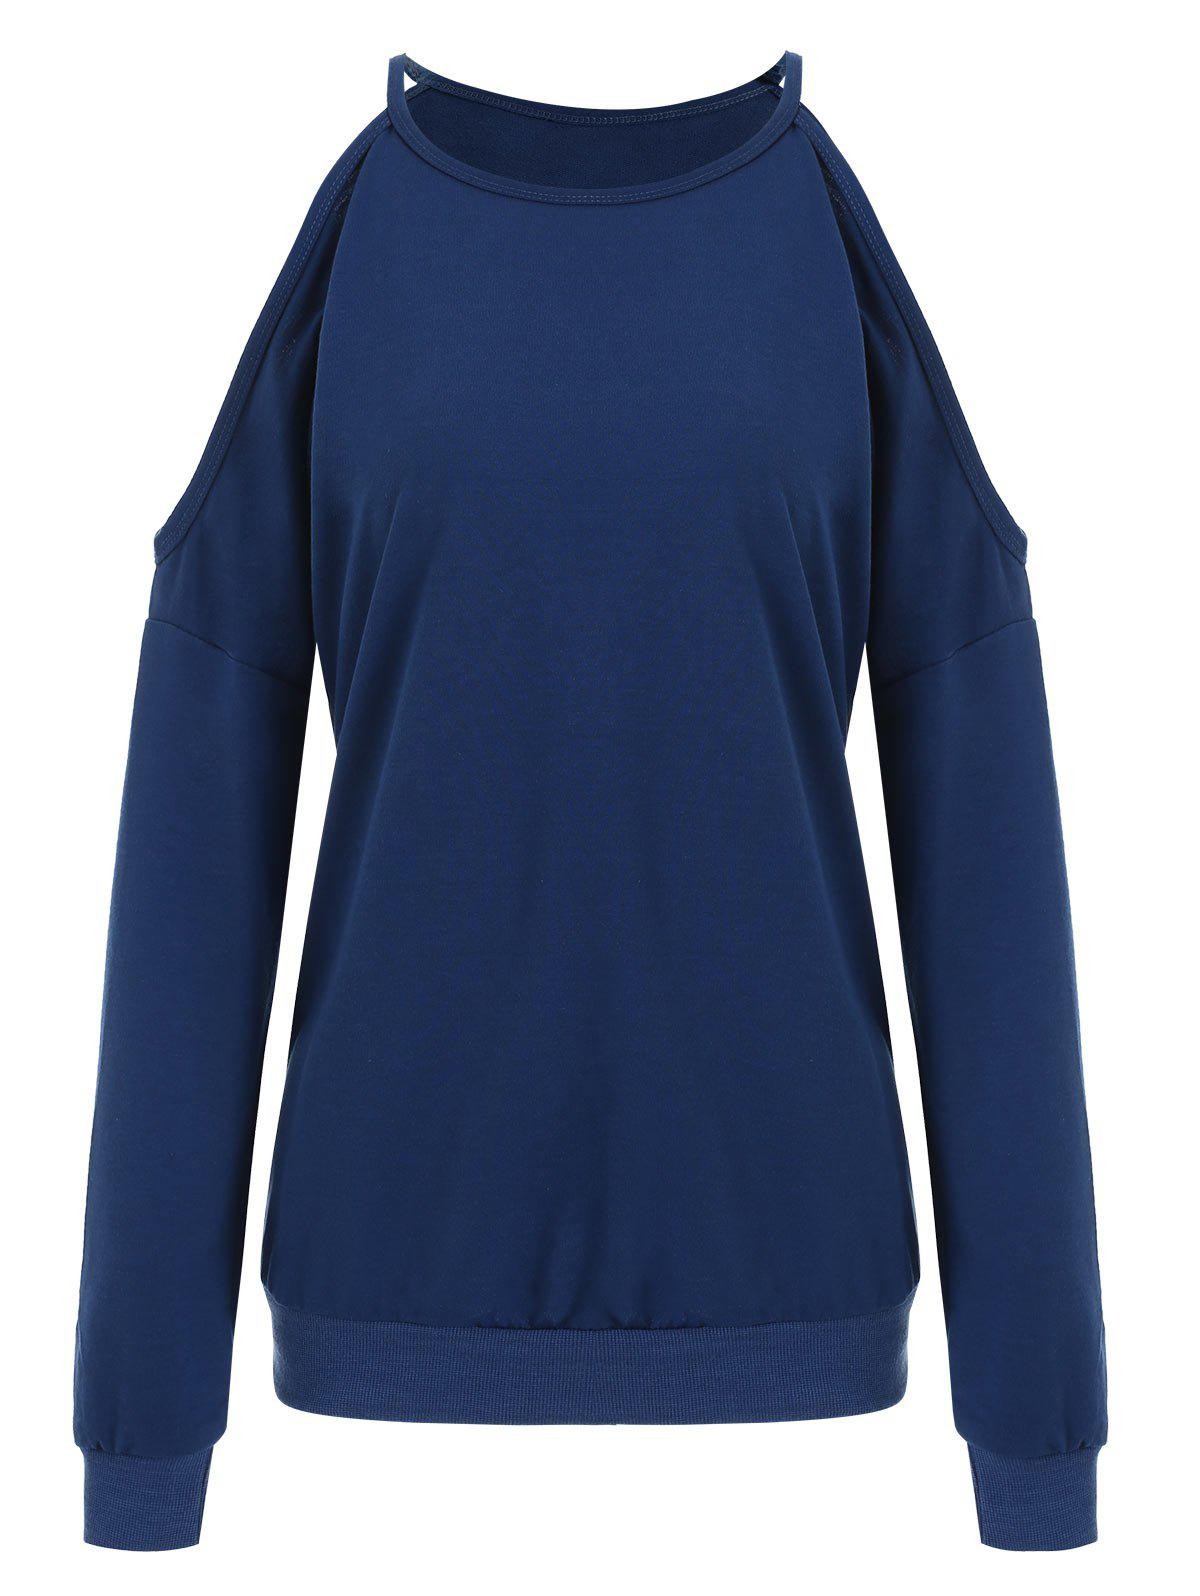 Fashion Round Neck Cold Shoulder Sweatshirt